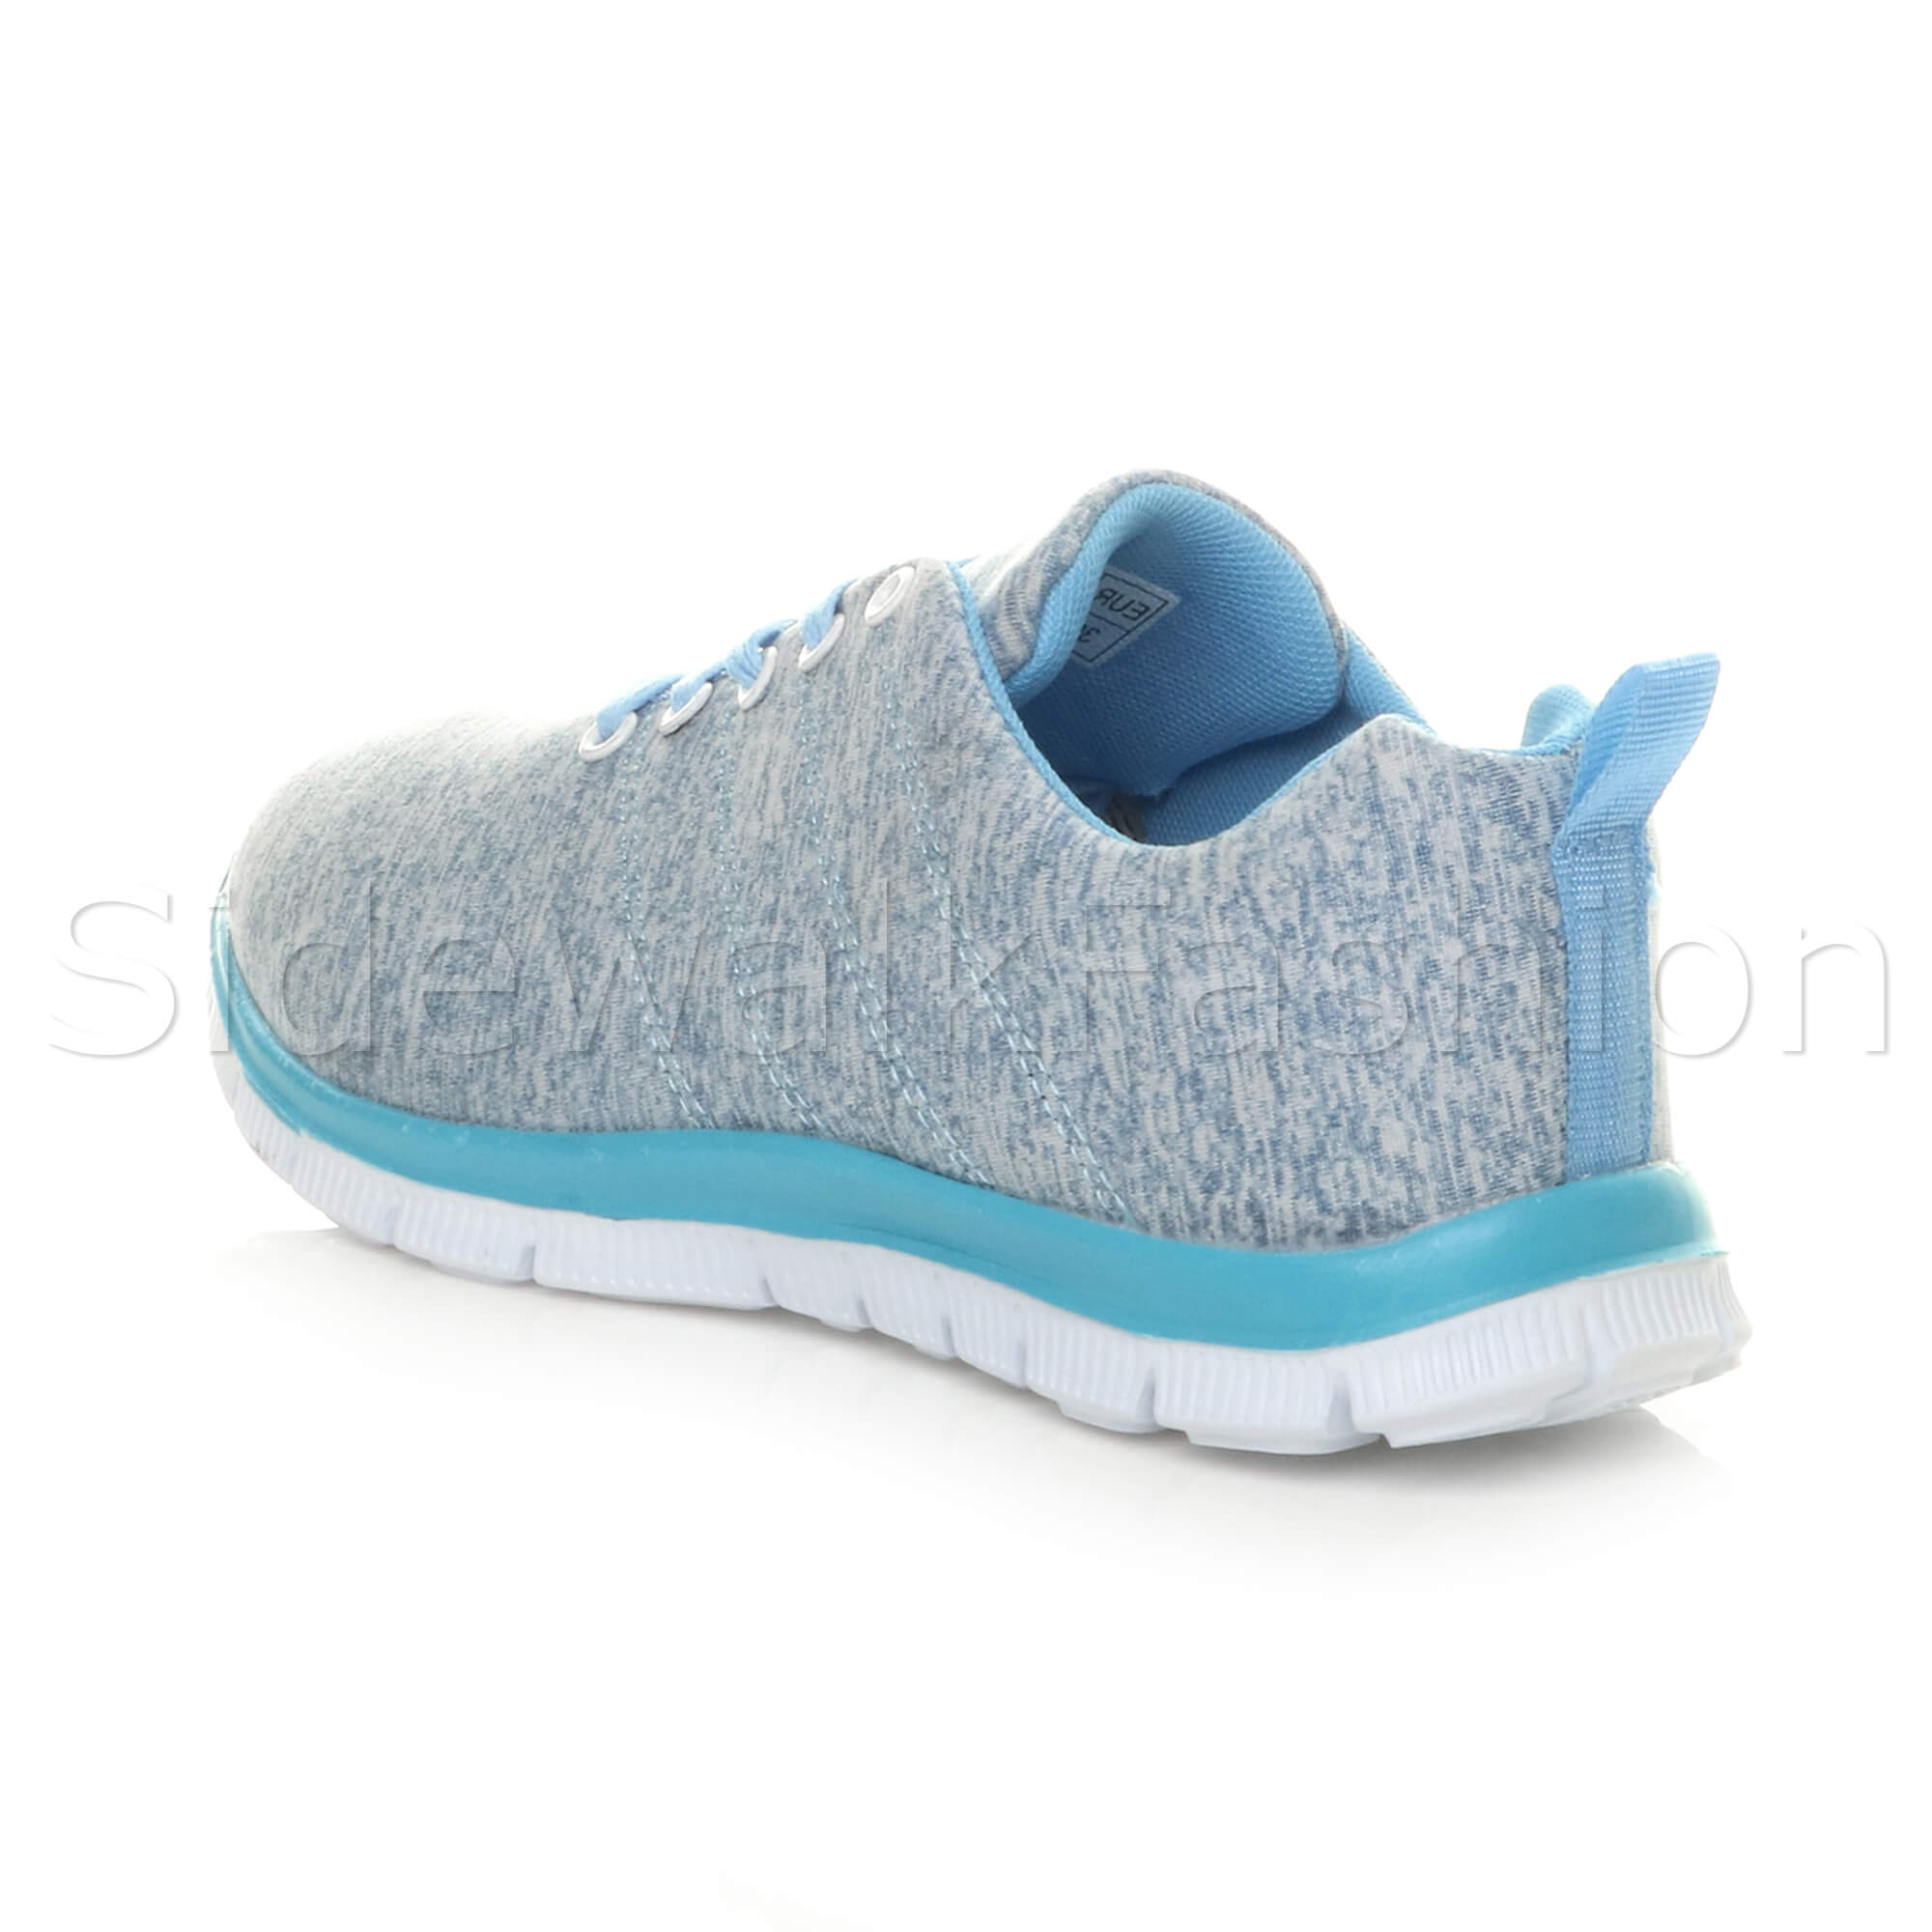 Womens-ladies-comfort-memory-foam-lace-up-trainers-activewear-sneakers-gym-shoes thumbnail 31